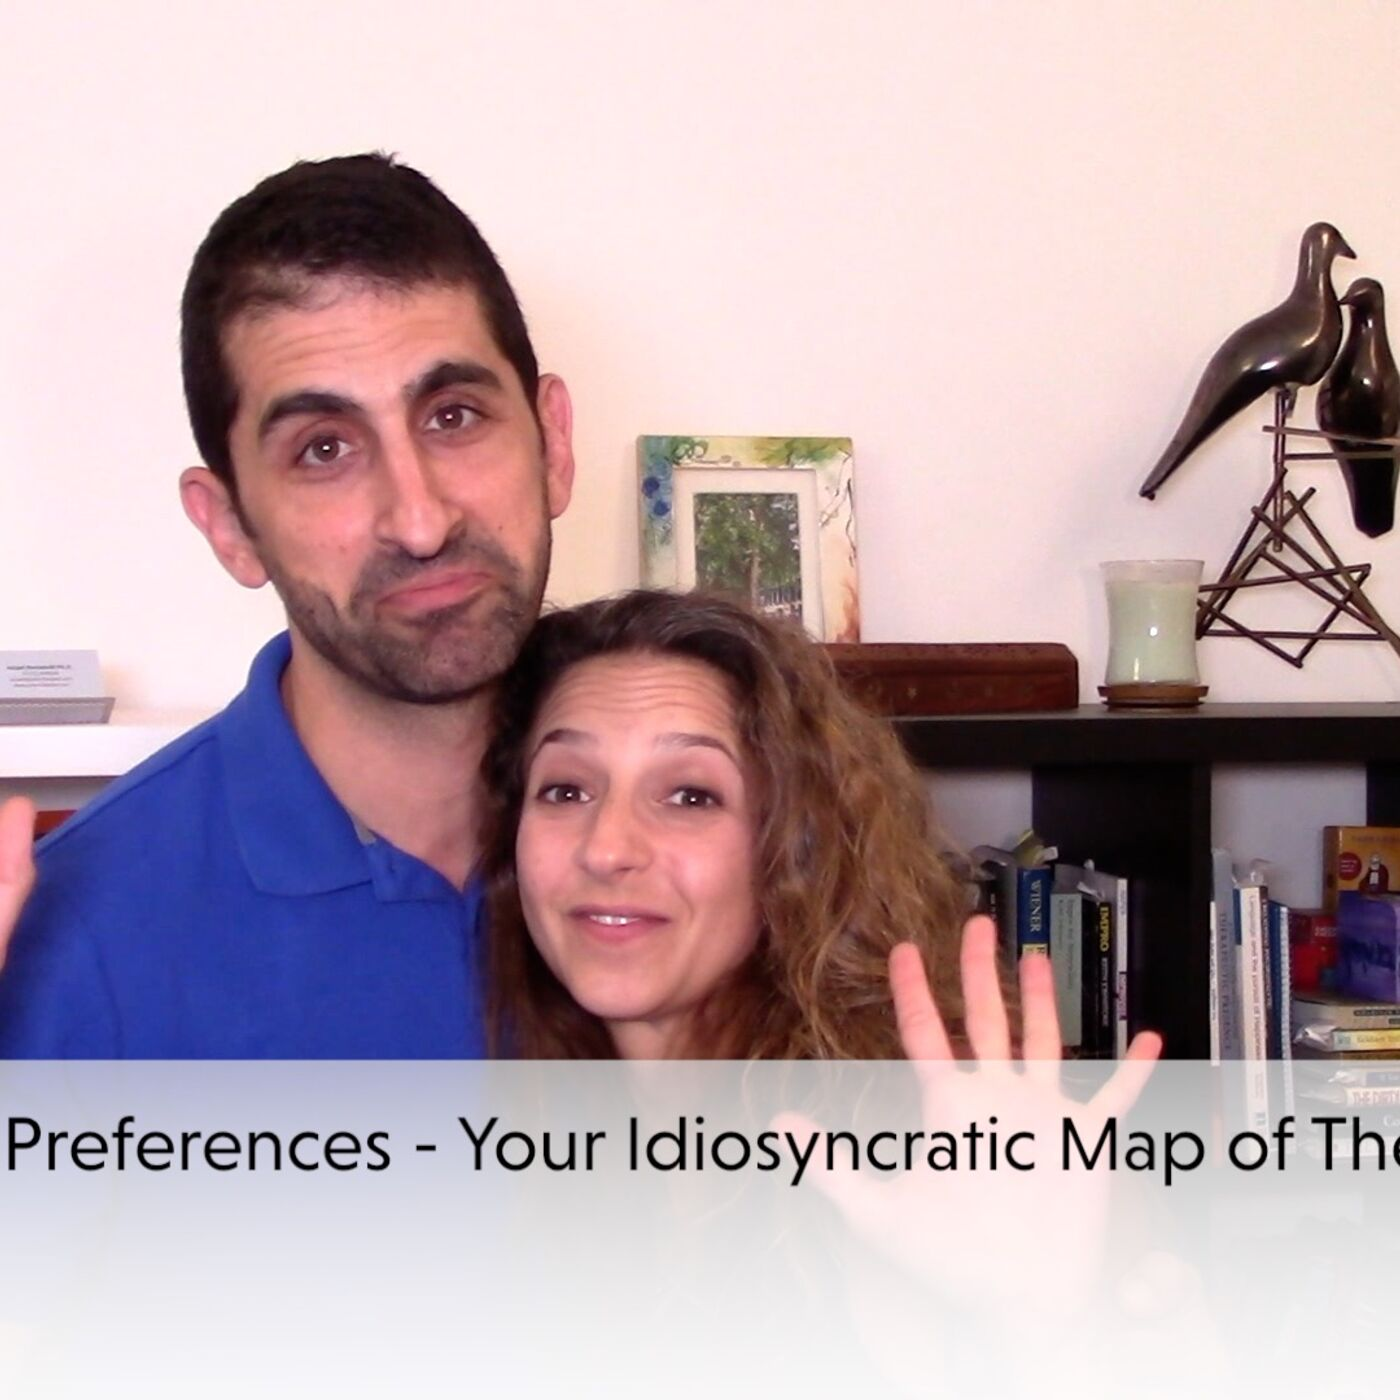 Sensory Preferences - Your Idiosyncratic Map of the World